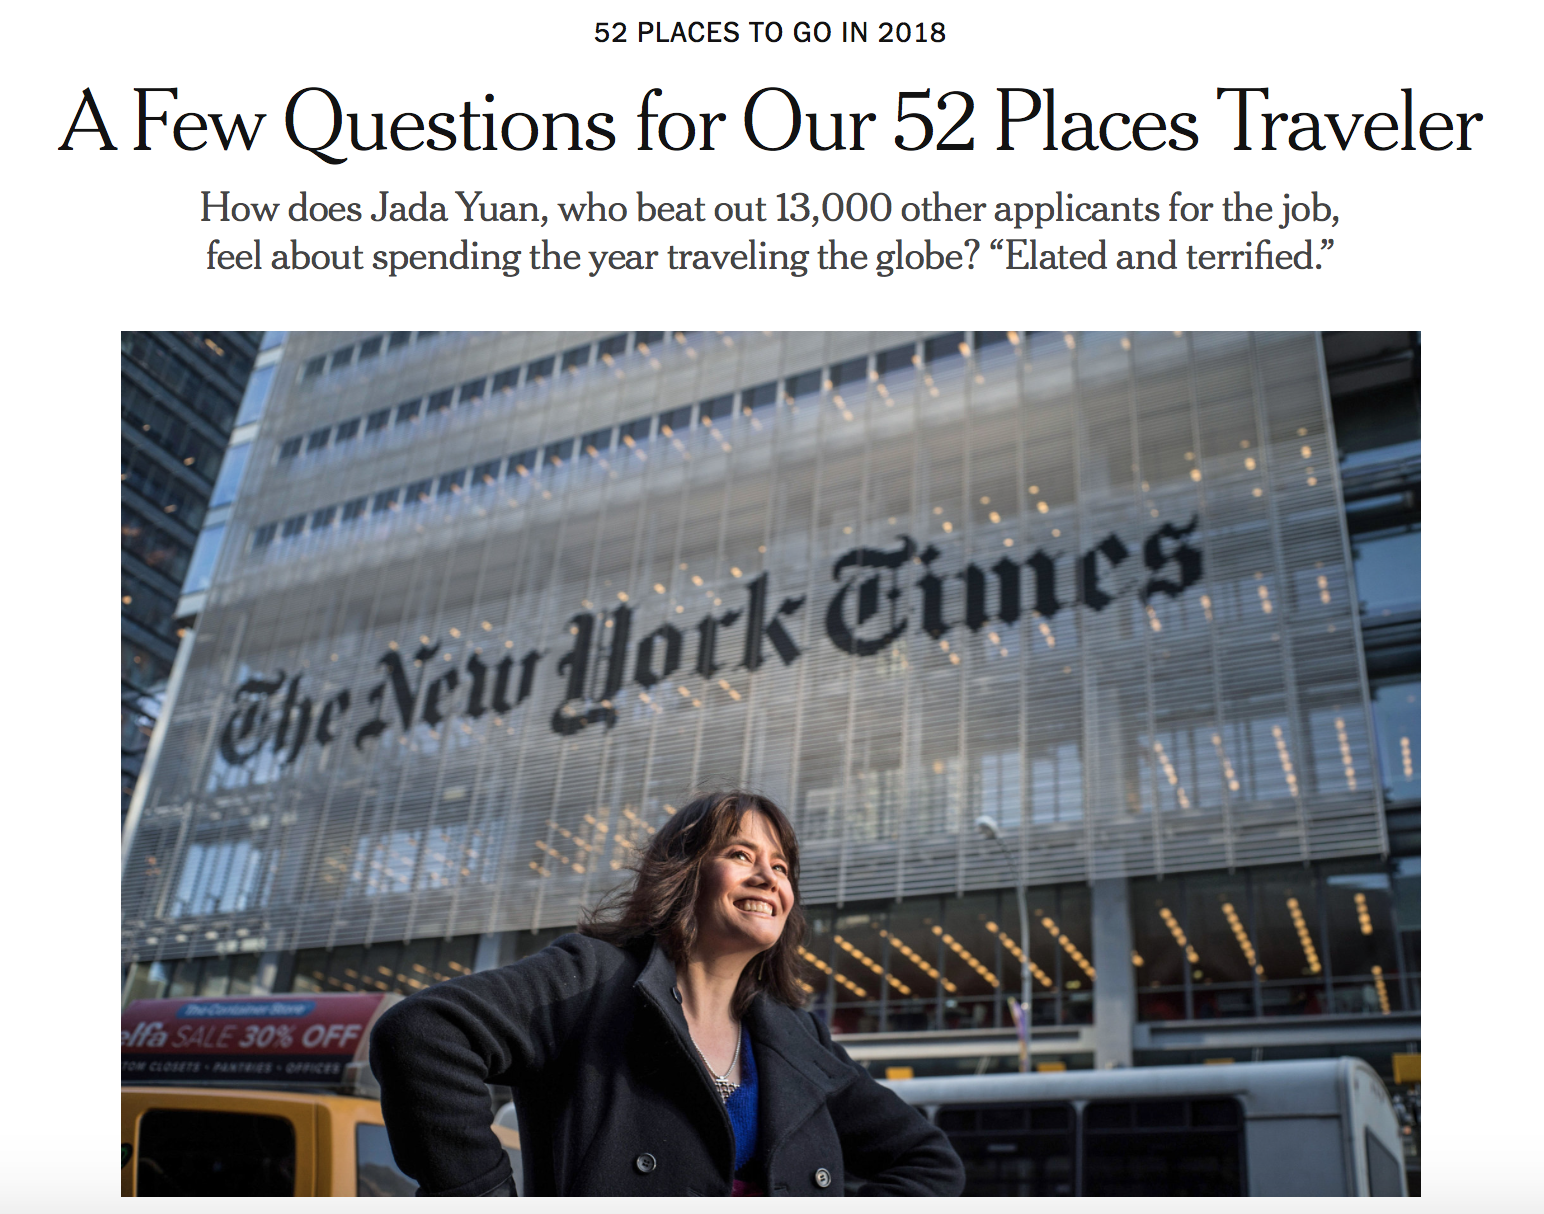 Thanks to Jada Yuan, the New York Times' new World Traveler, for the shoutout in her interview about how she's preparing for her yearlong, 'round-the-world journey!